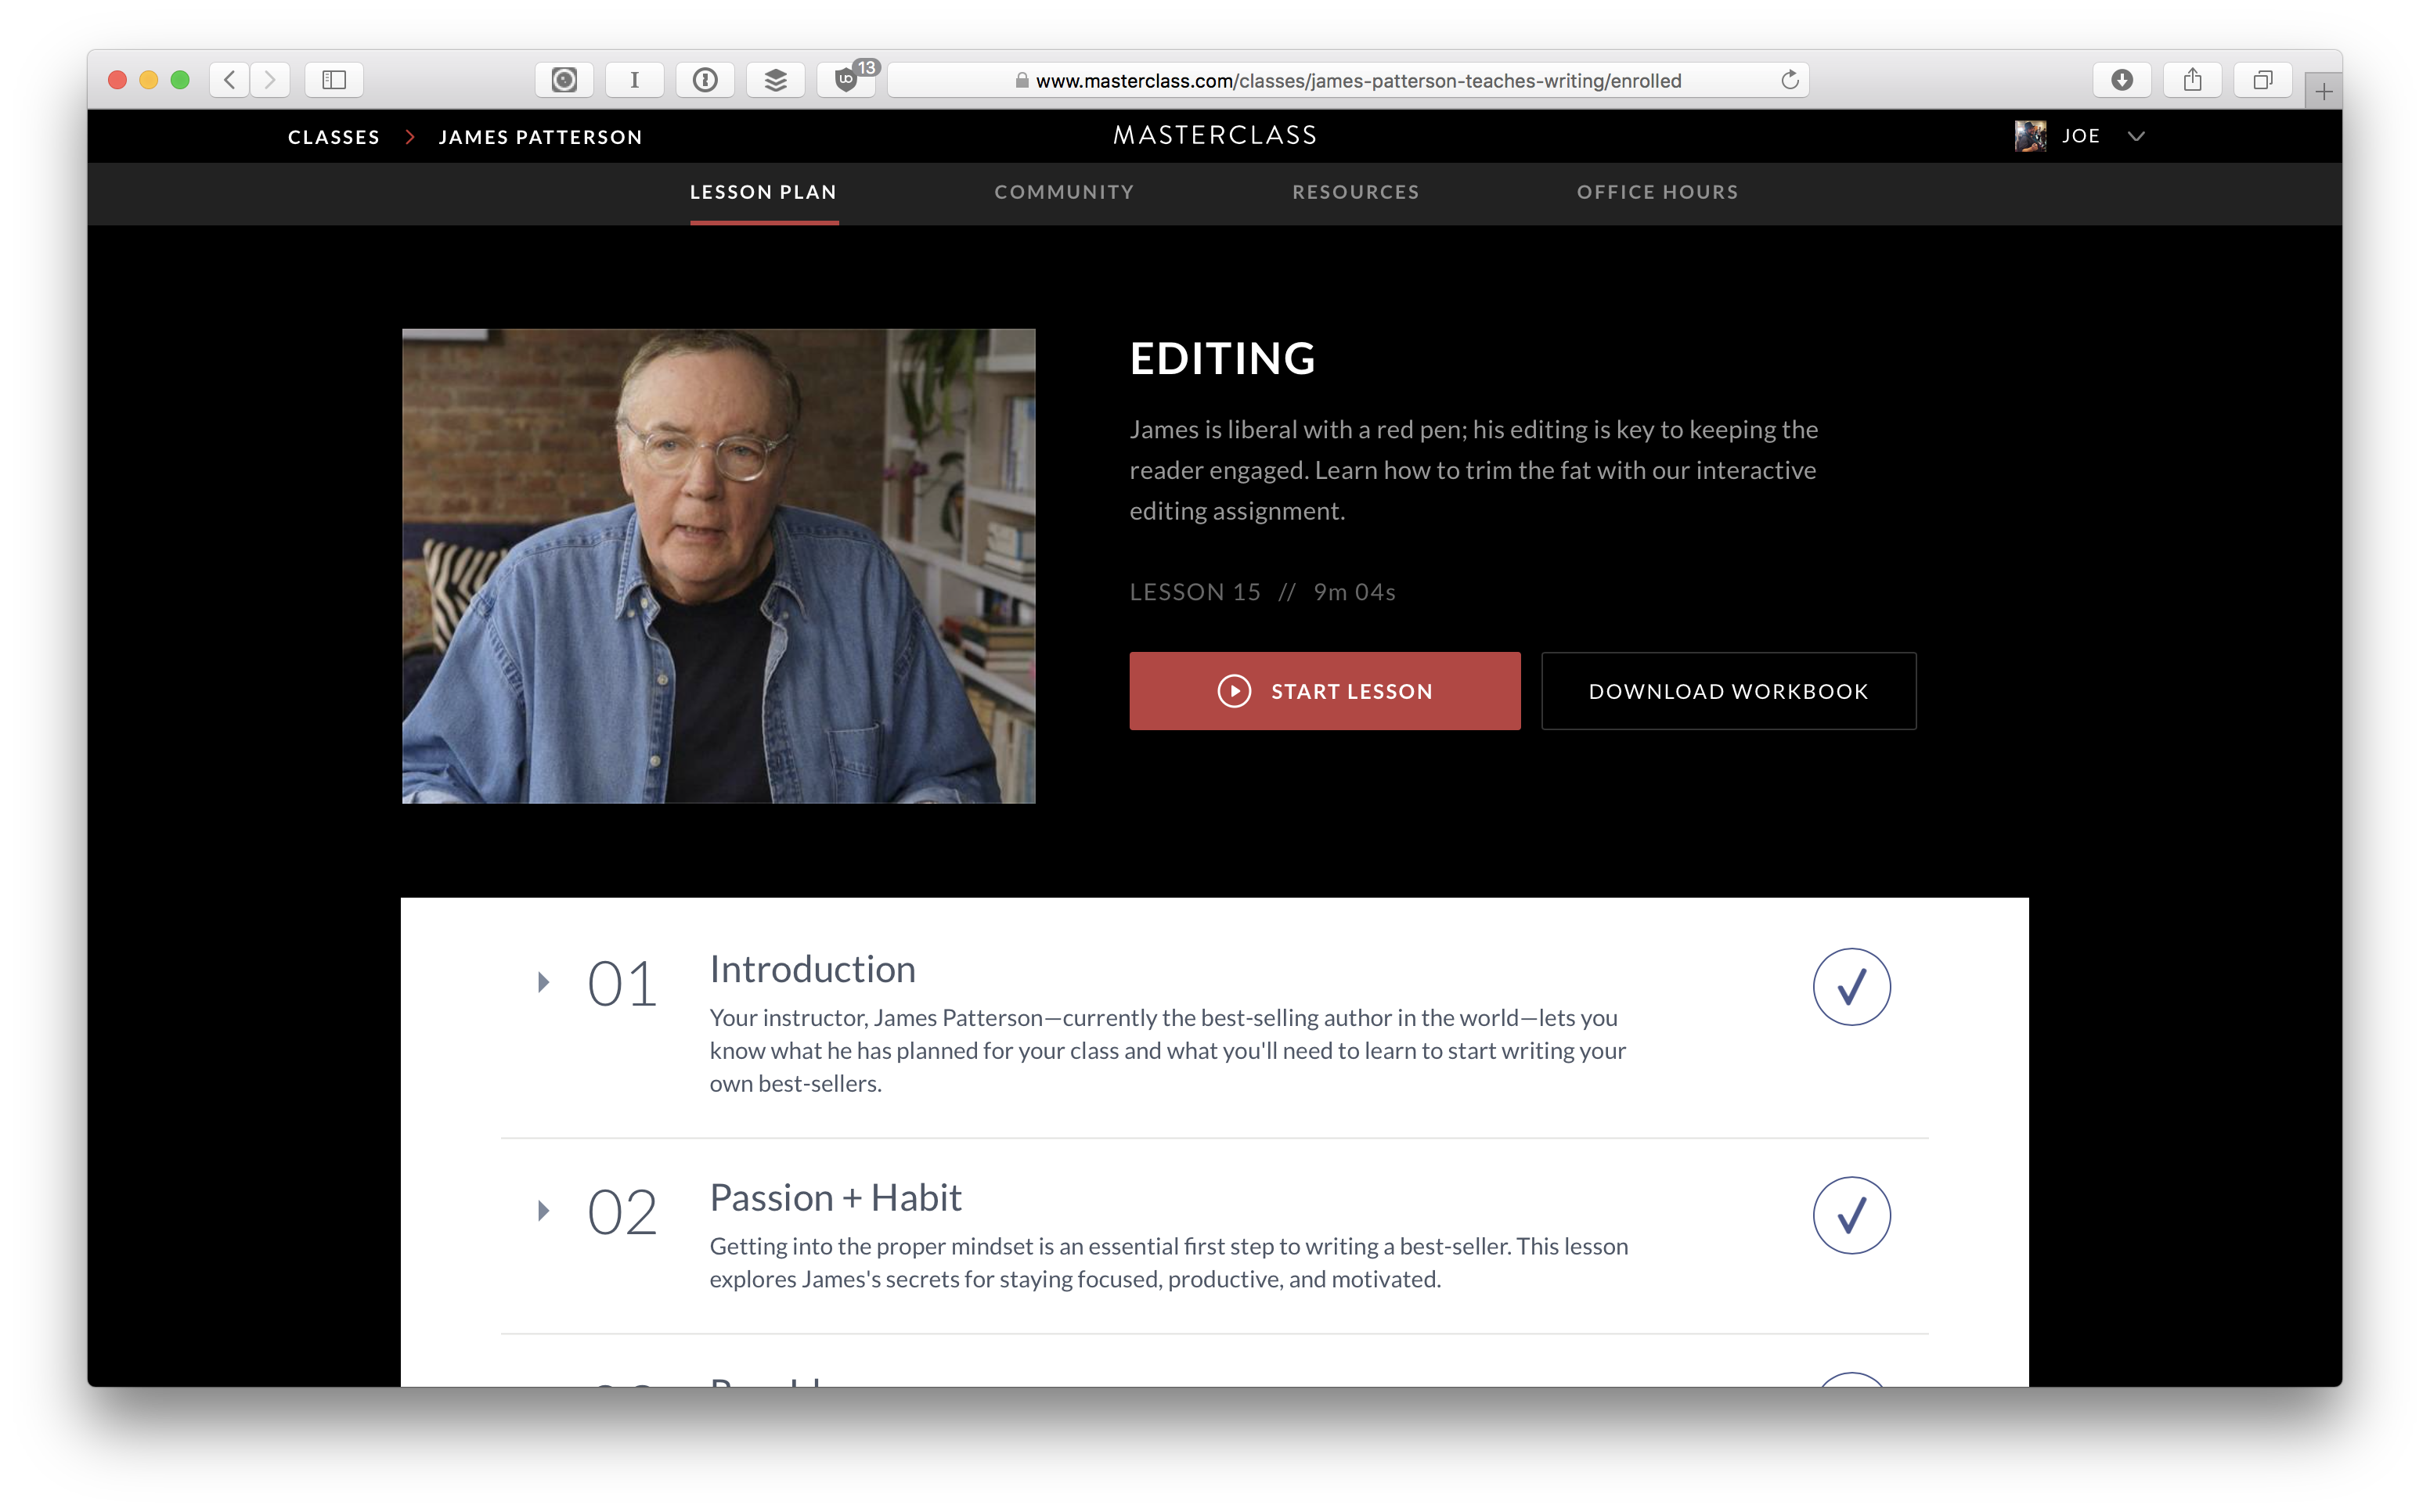 Learning Plan: James Patterson's Masterclass